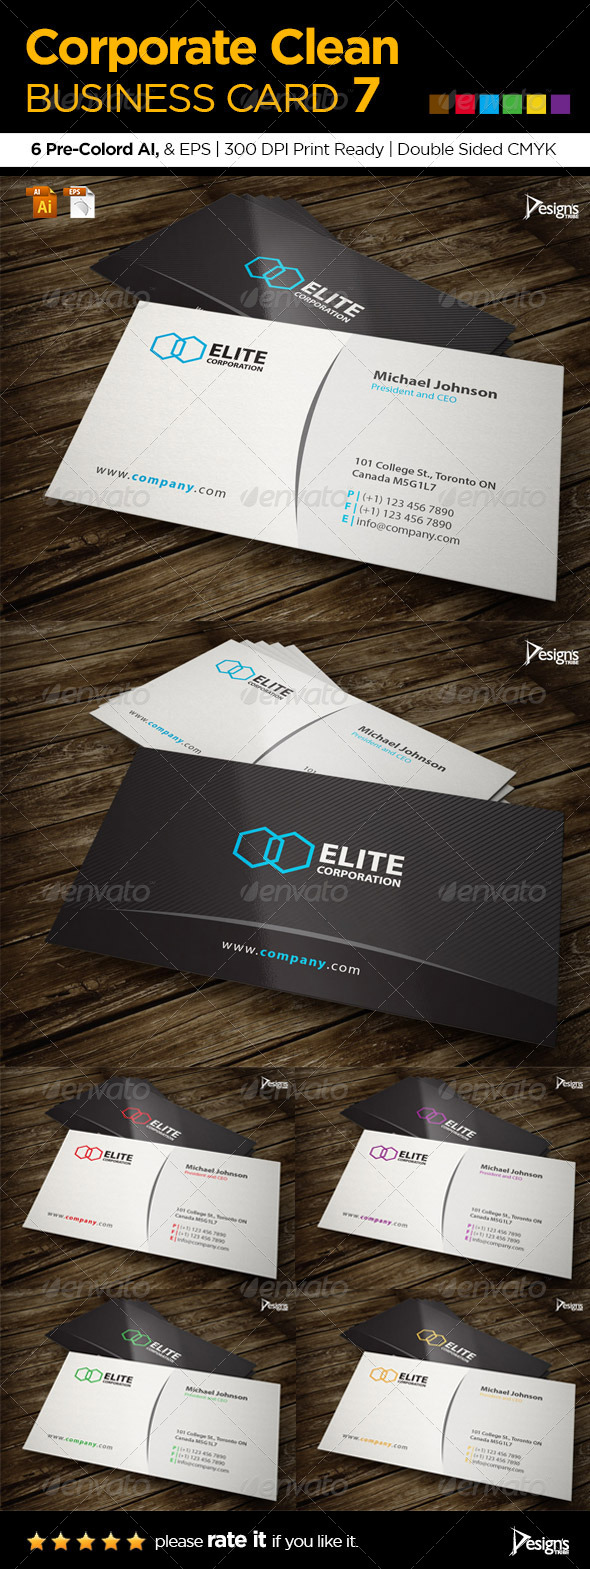 Corporate Clean Business Card 7 - Corporate Business Cards